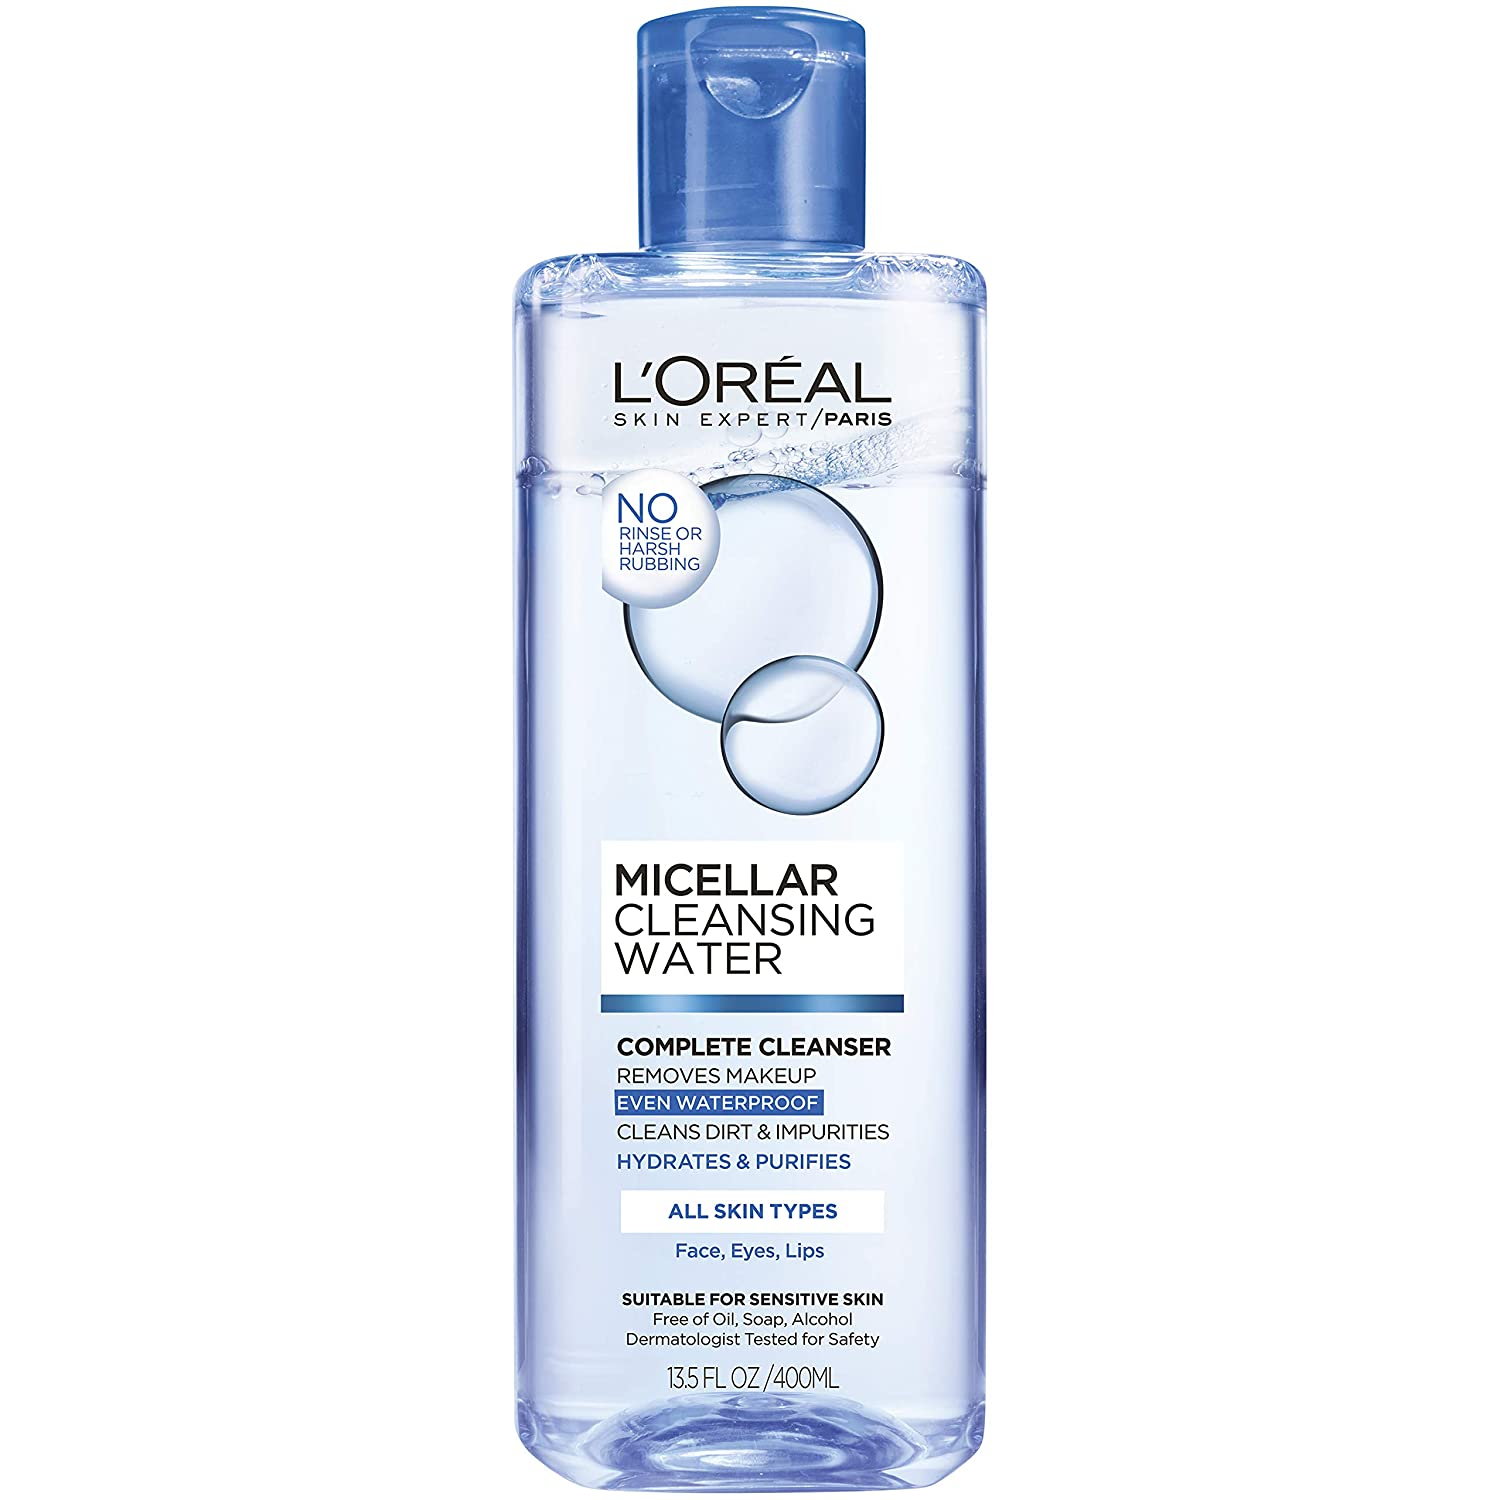 L'Oreal Paris Micellar Cleansing Water